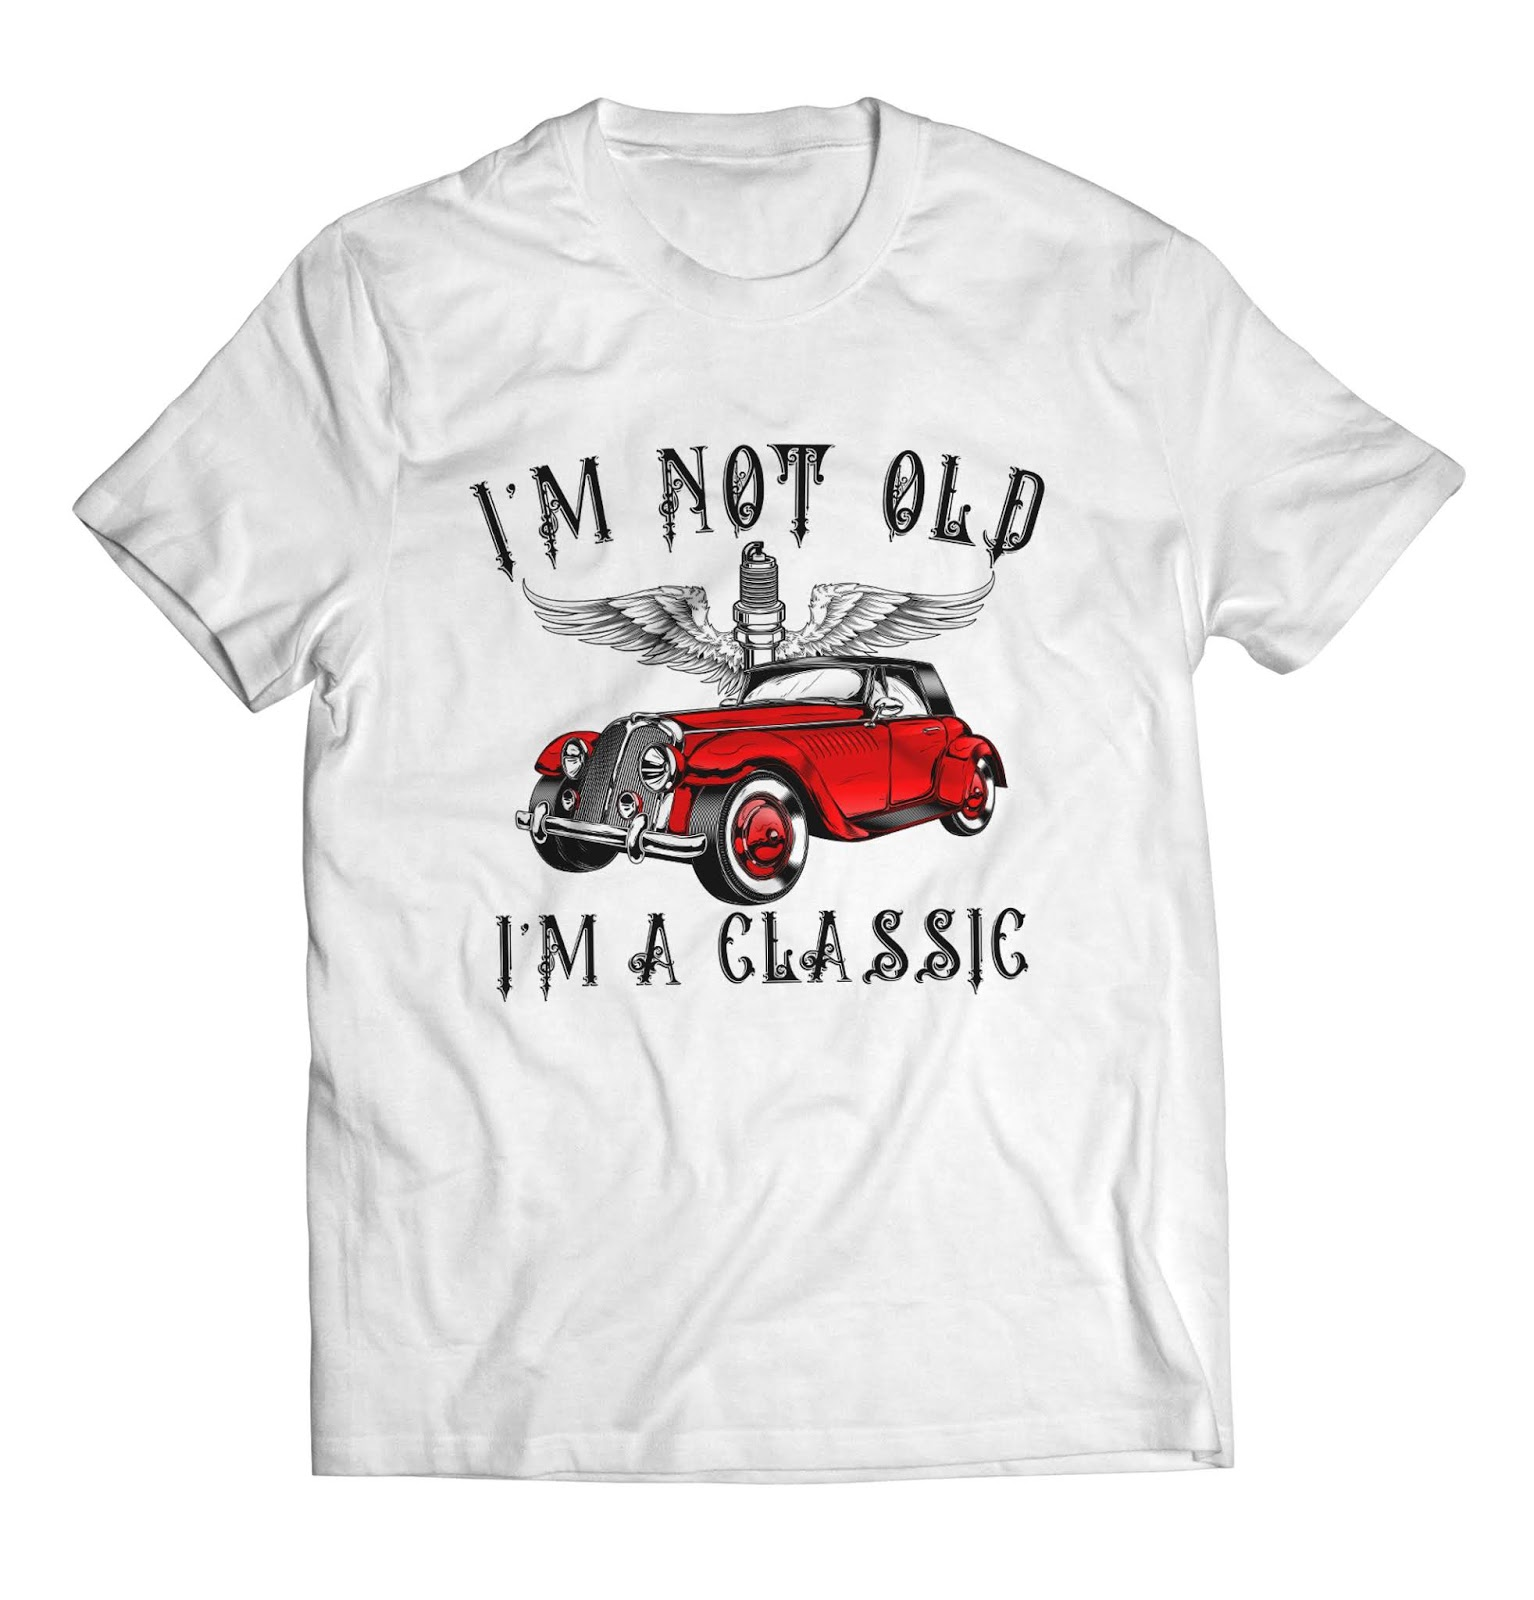 04a903041 Funny Classic Car T-Shirt, I'm Not Old I'm a Classic, Men Women ...